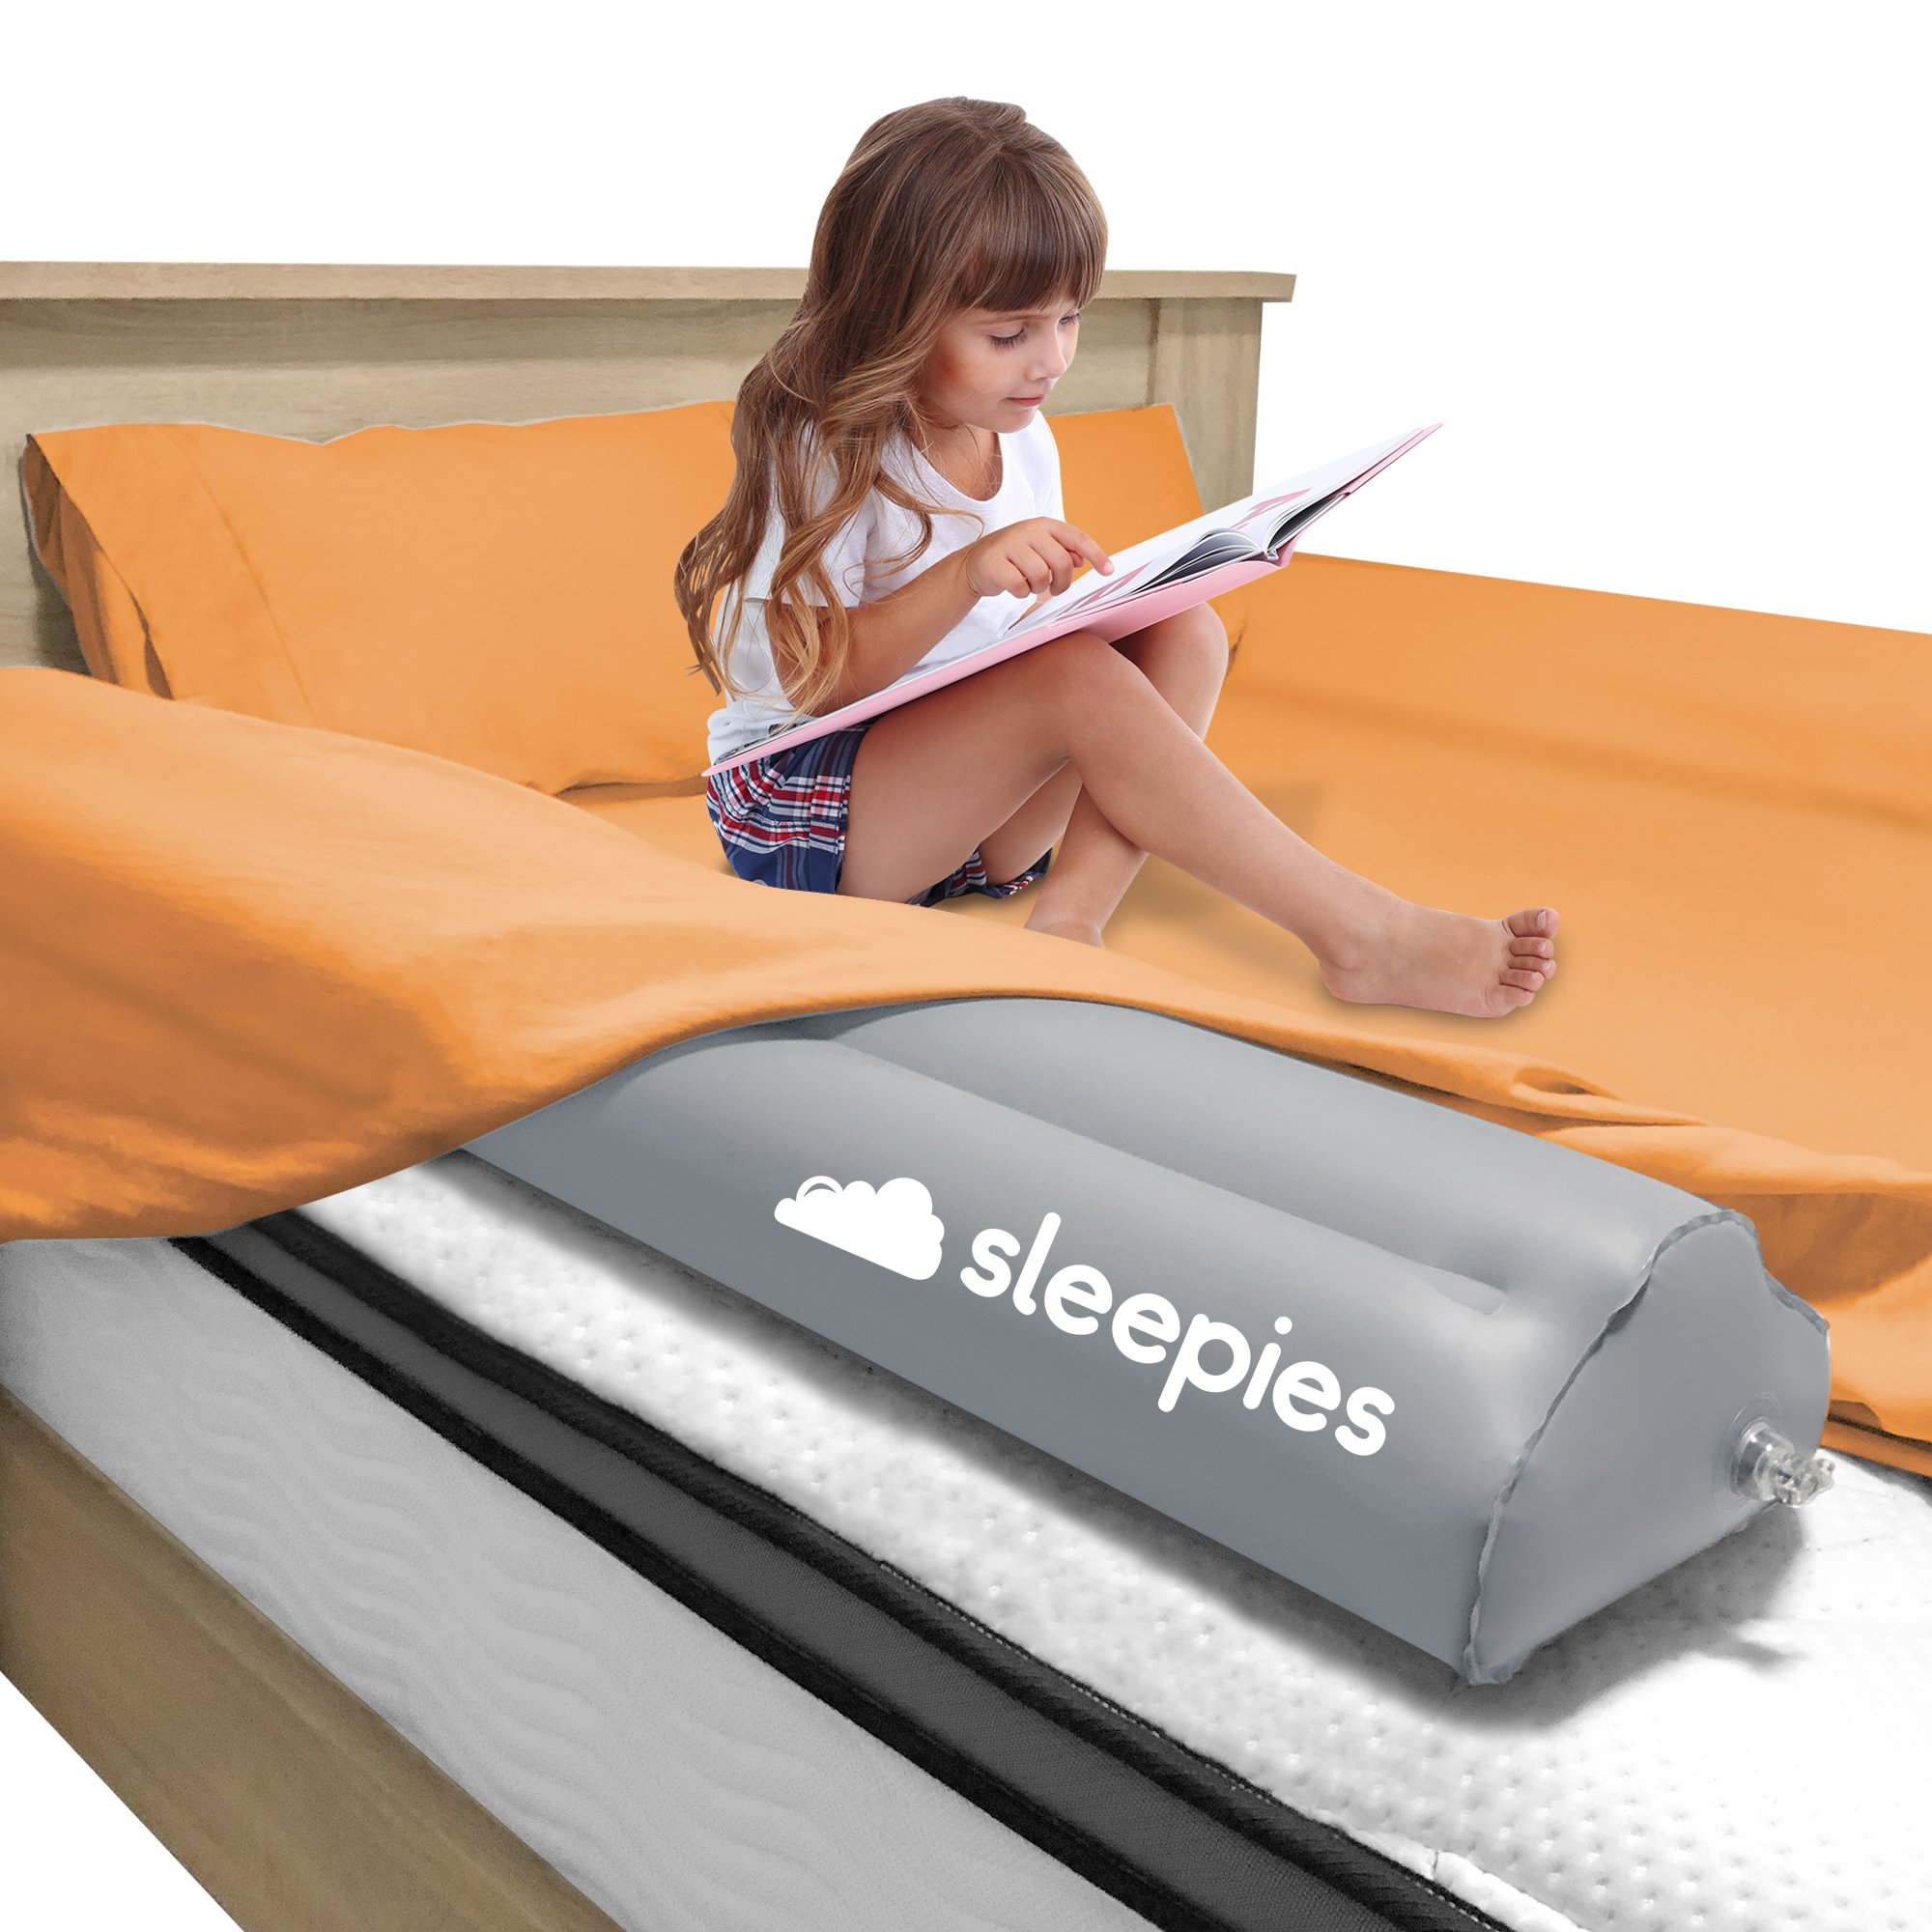 Inflatable Toddler Bed Rail - 2 Pack. Portable Kids Bed Rail Guard. Safety Bed Bumper Great for Home or Travel. Fits All Bed Sizes.